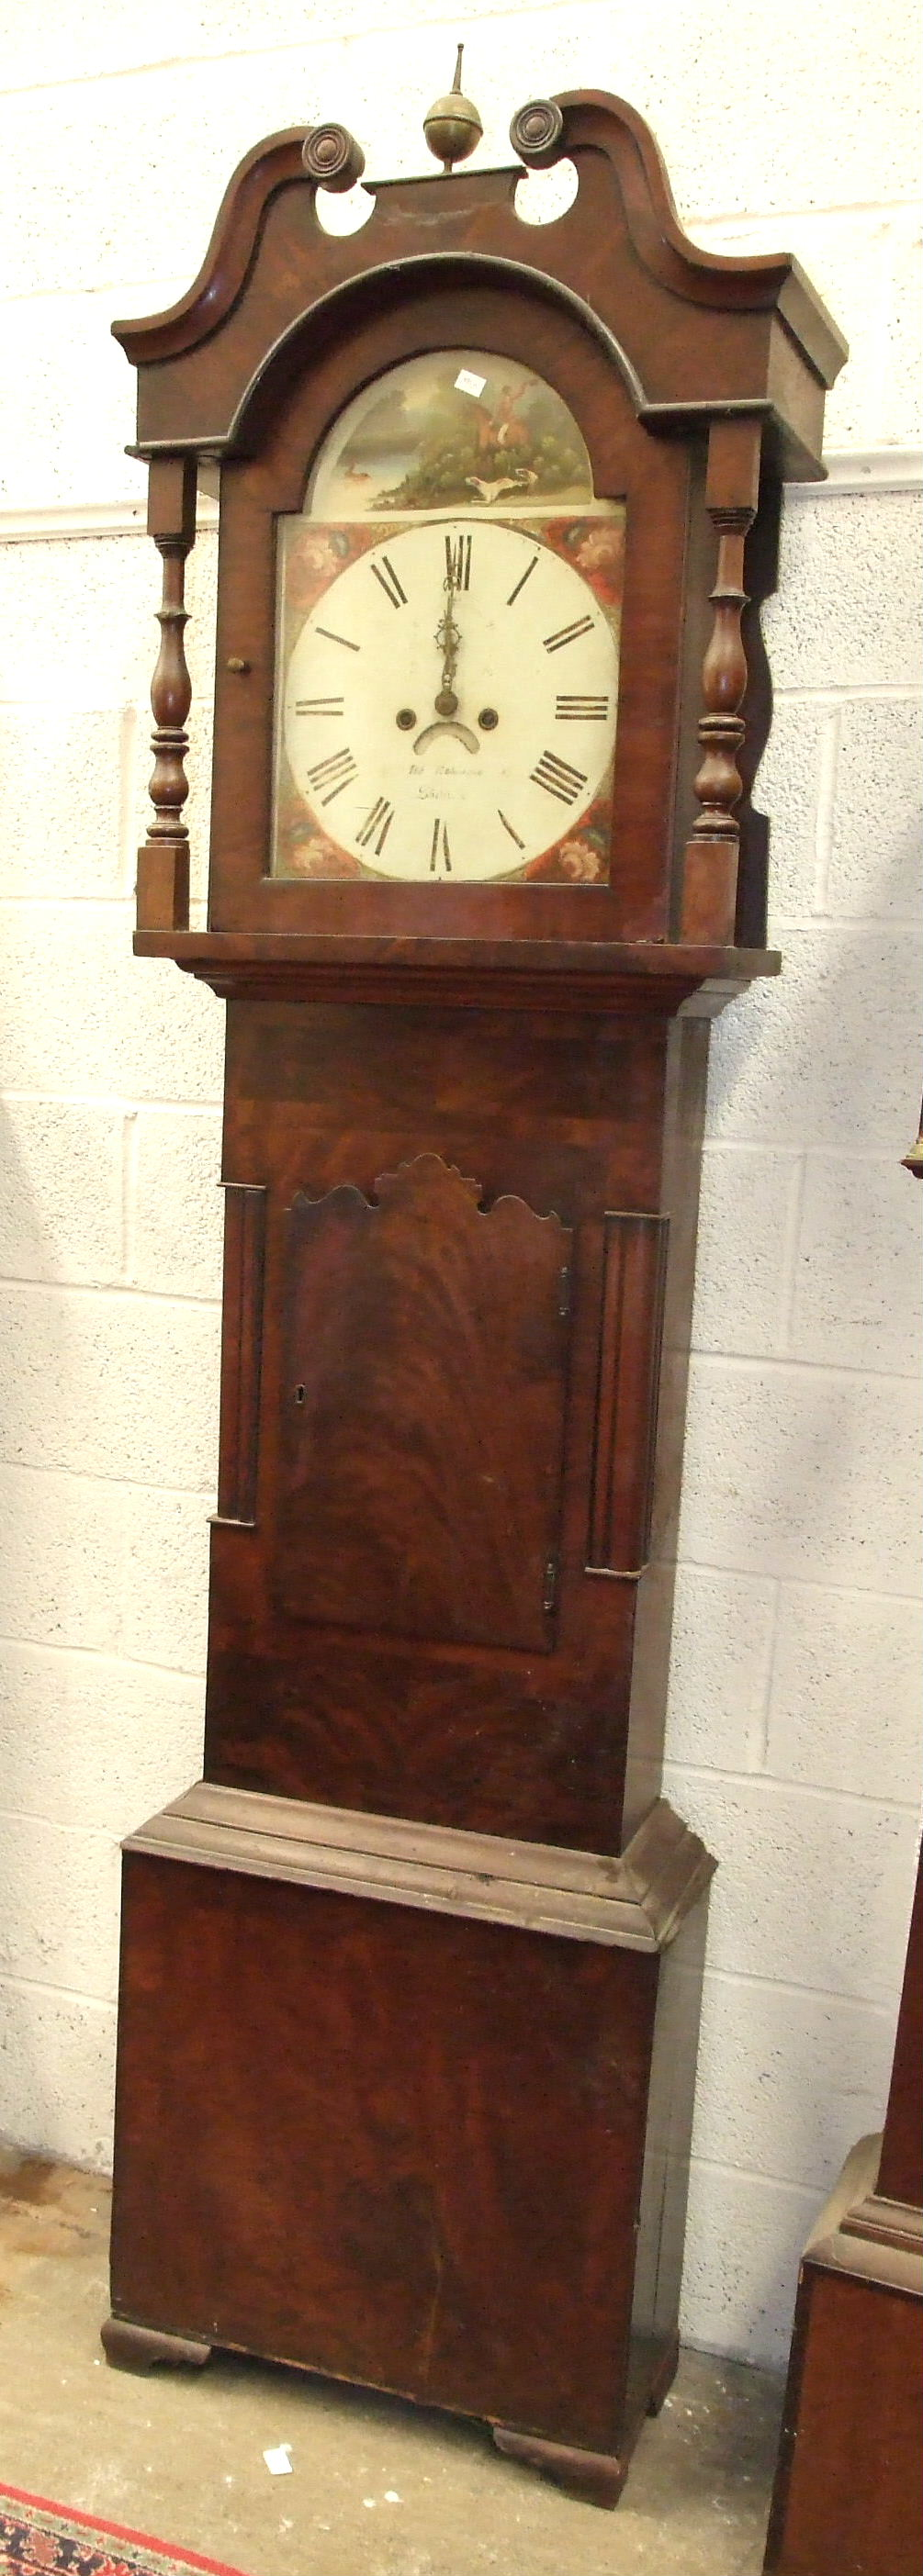 A 19th century mahogany North Country long case clock, the arched dial painted with stag hunting